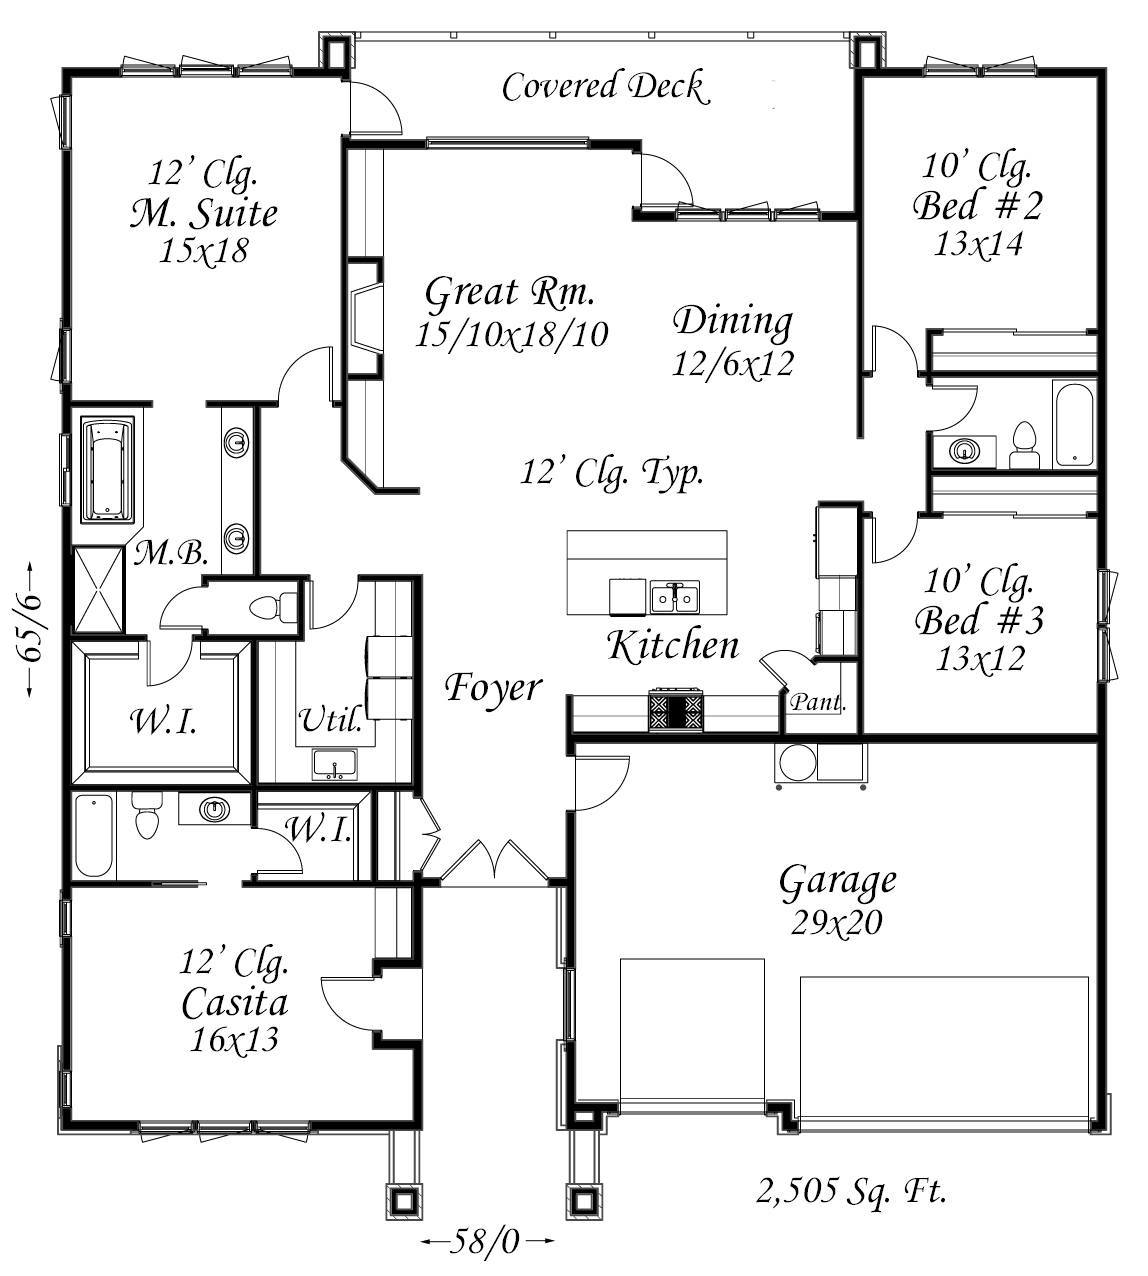 Beautiful one story modern casita house plan affordable for Affordable one story house plans